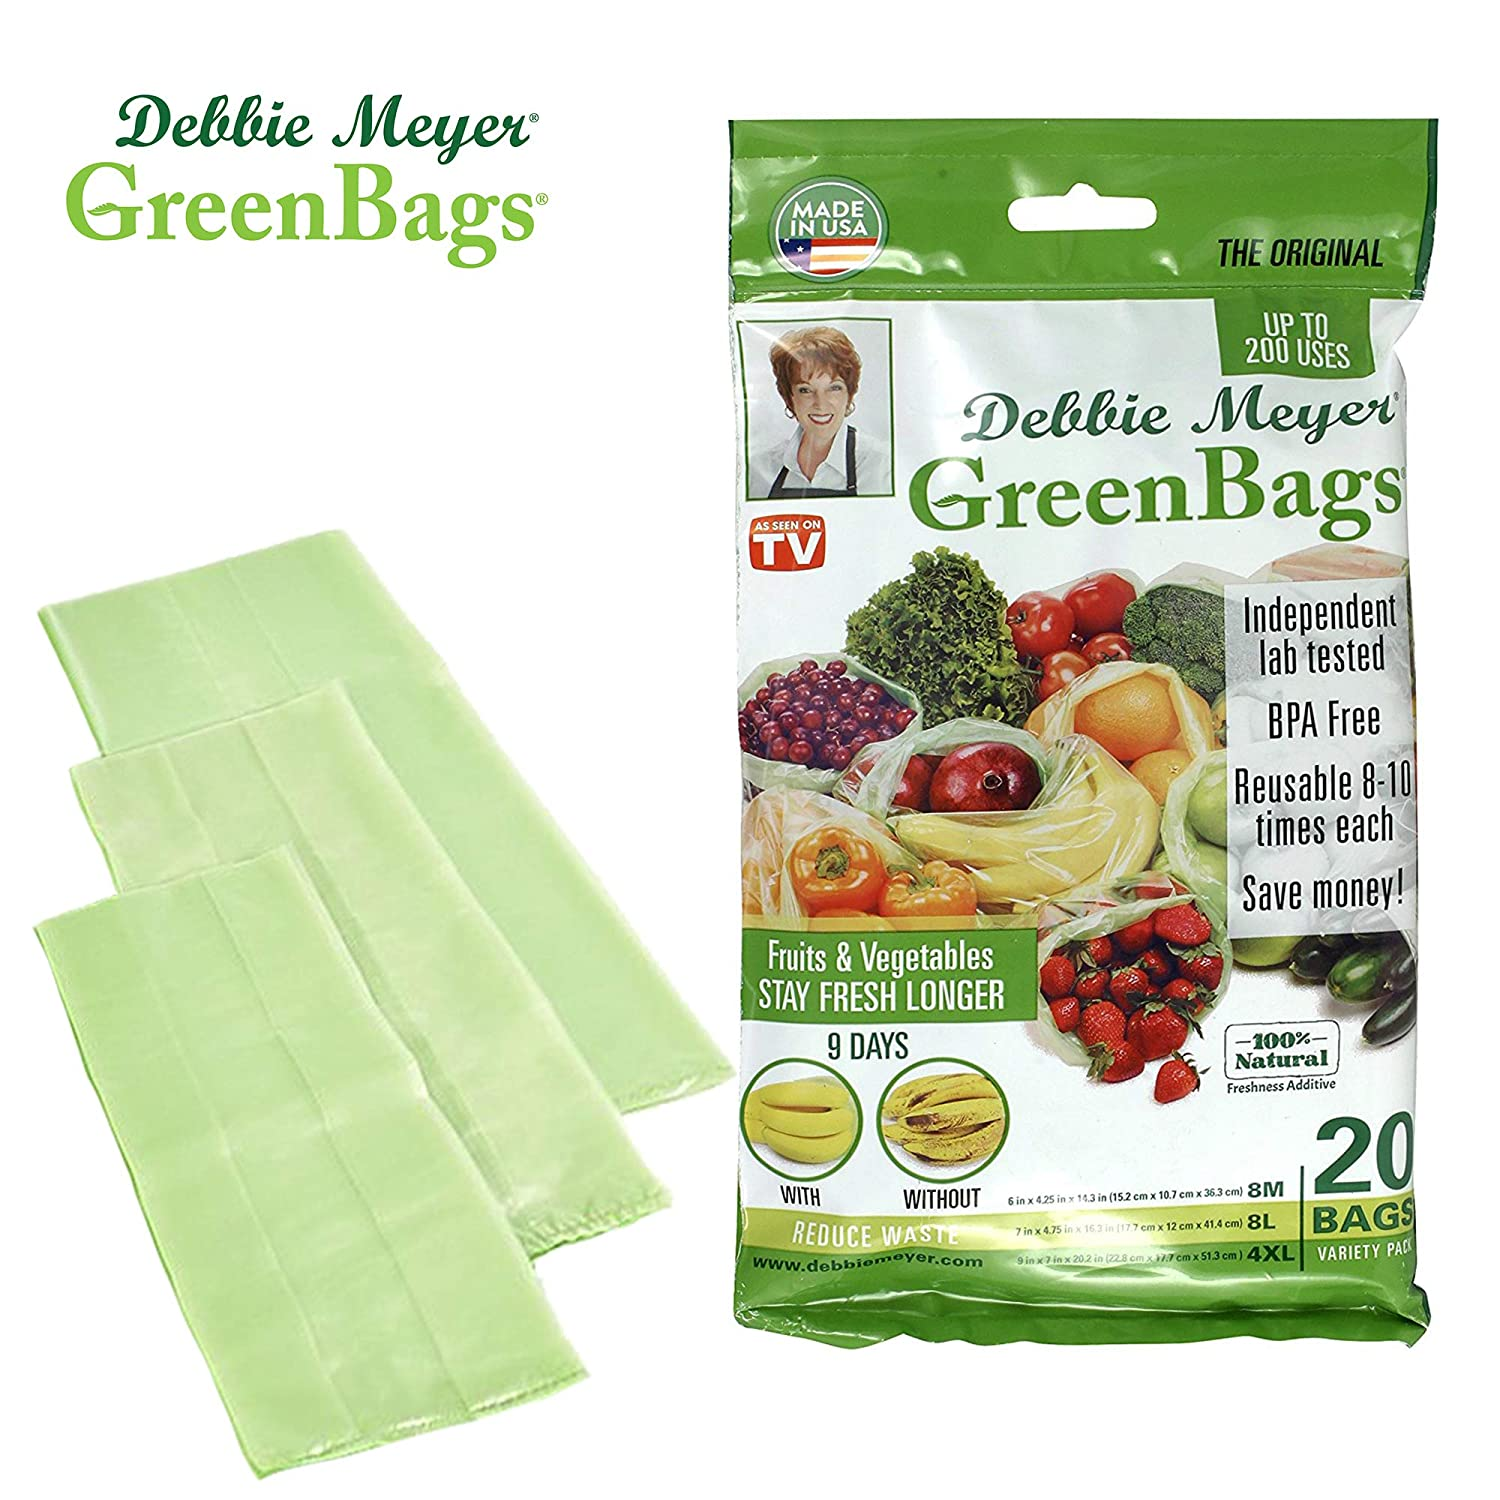 Debbie Meyer GreenBags - Reusable BPA Free Food Saver Storage Bags